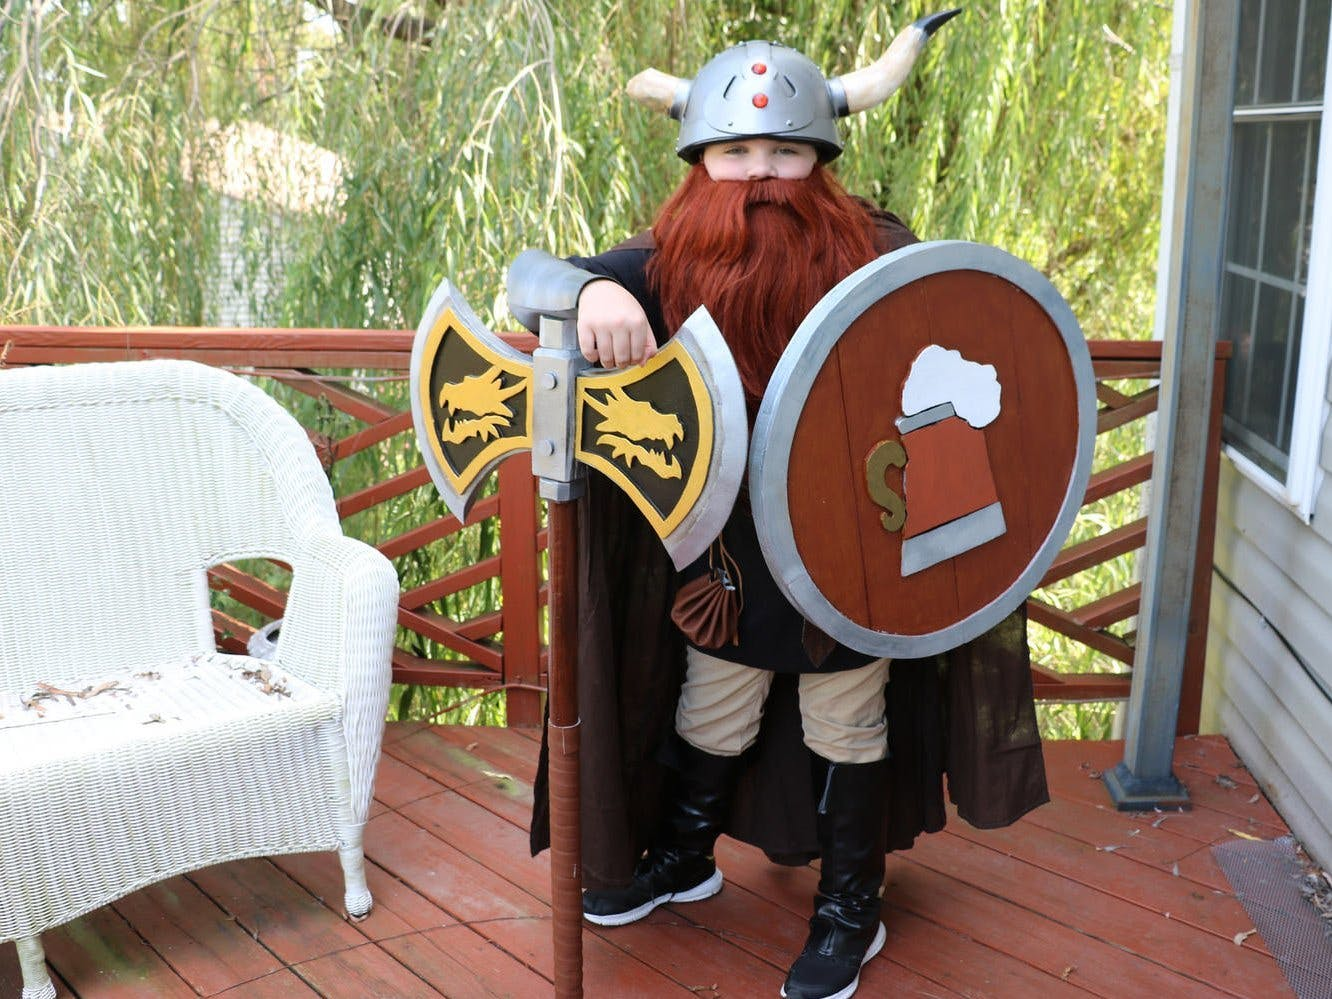 The Day My Son Wanted to be Bruenor Battlehammer!